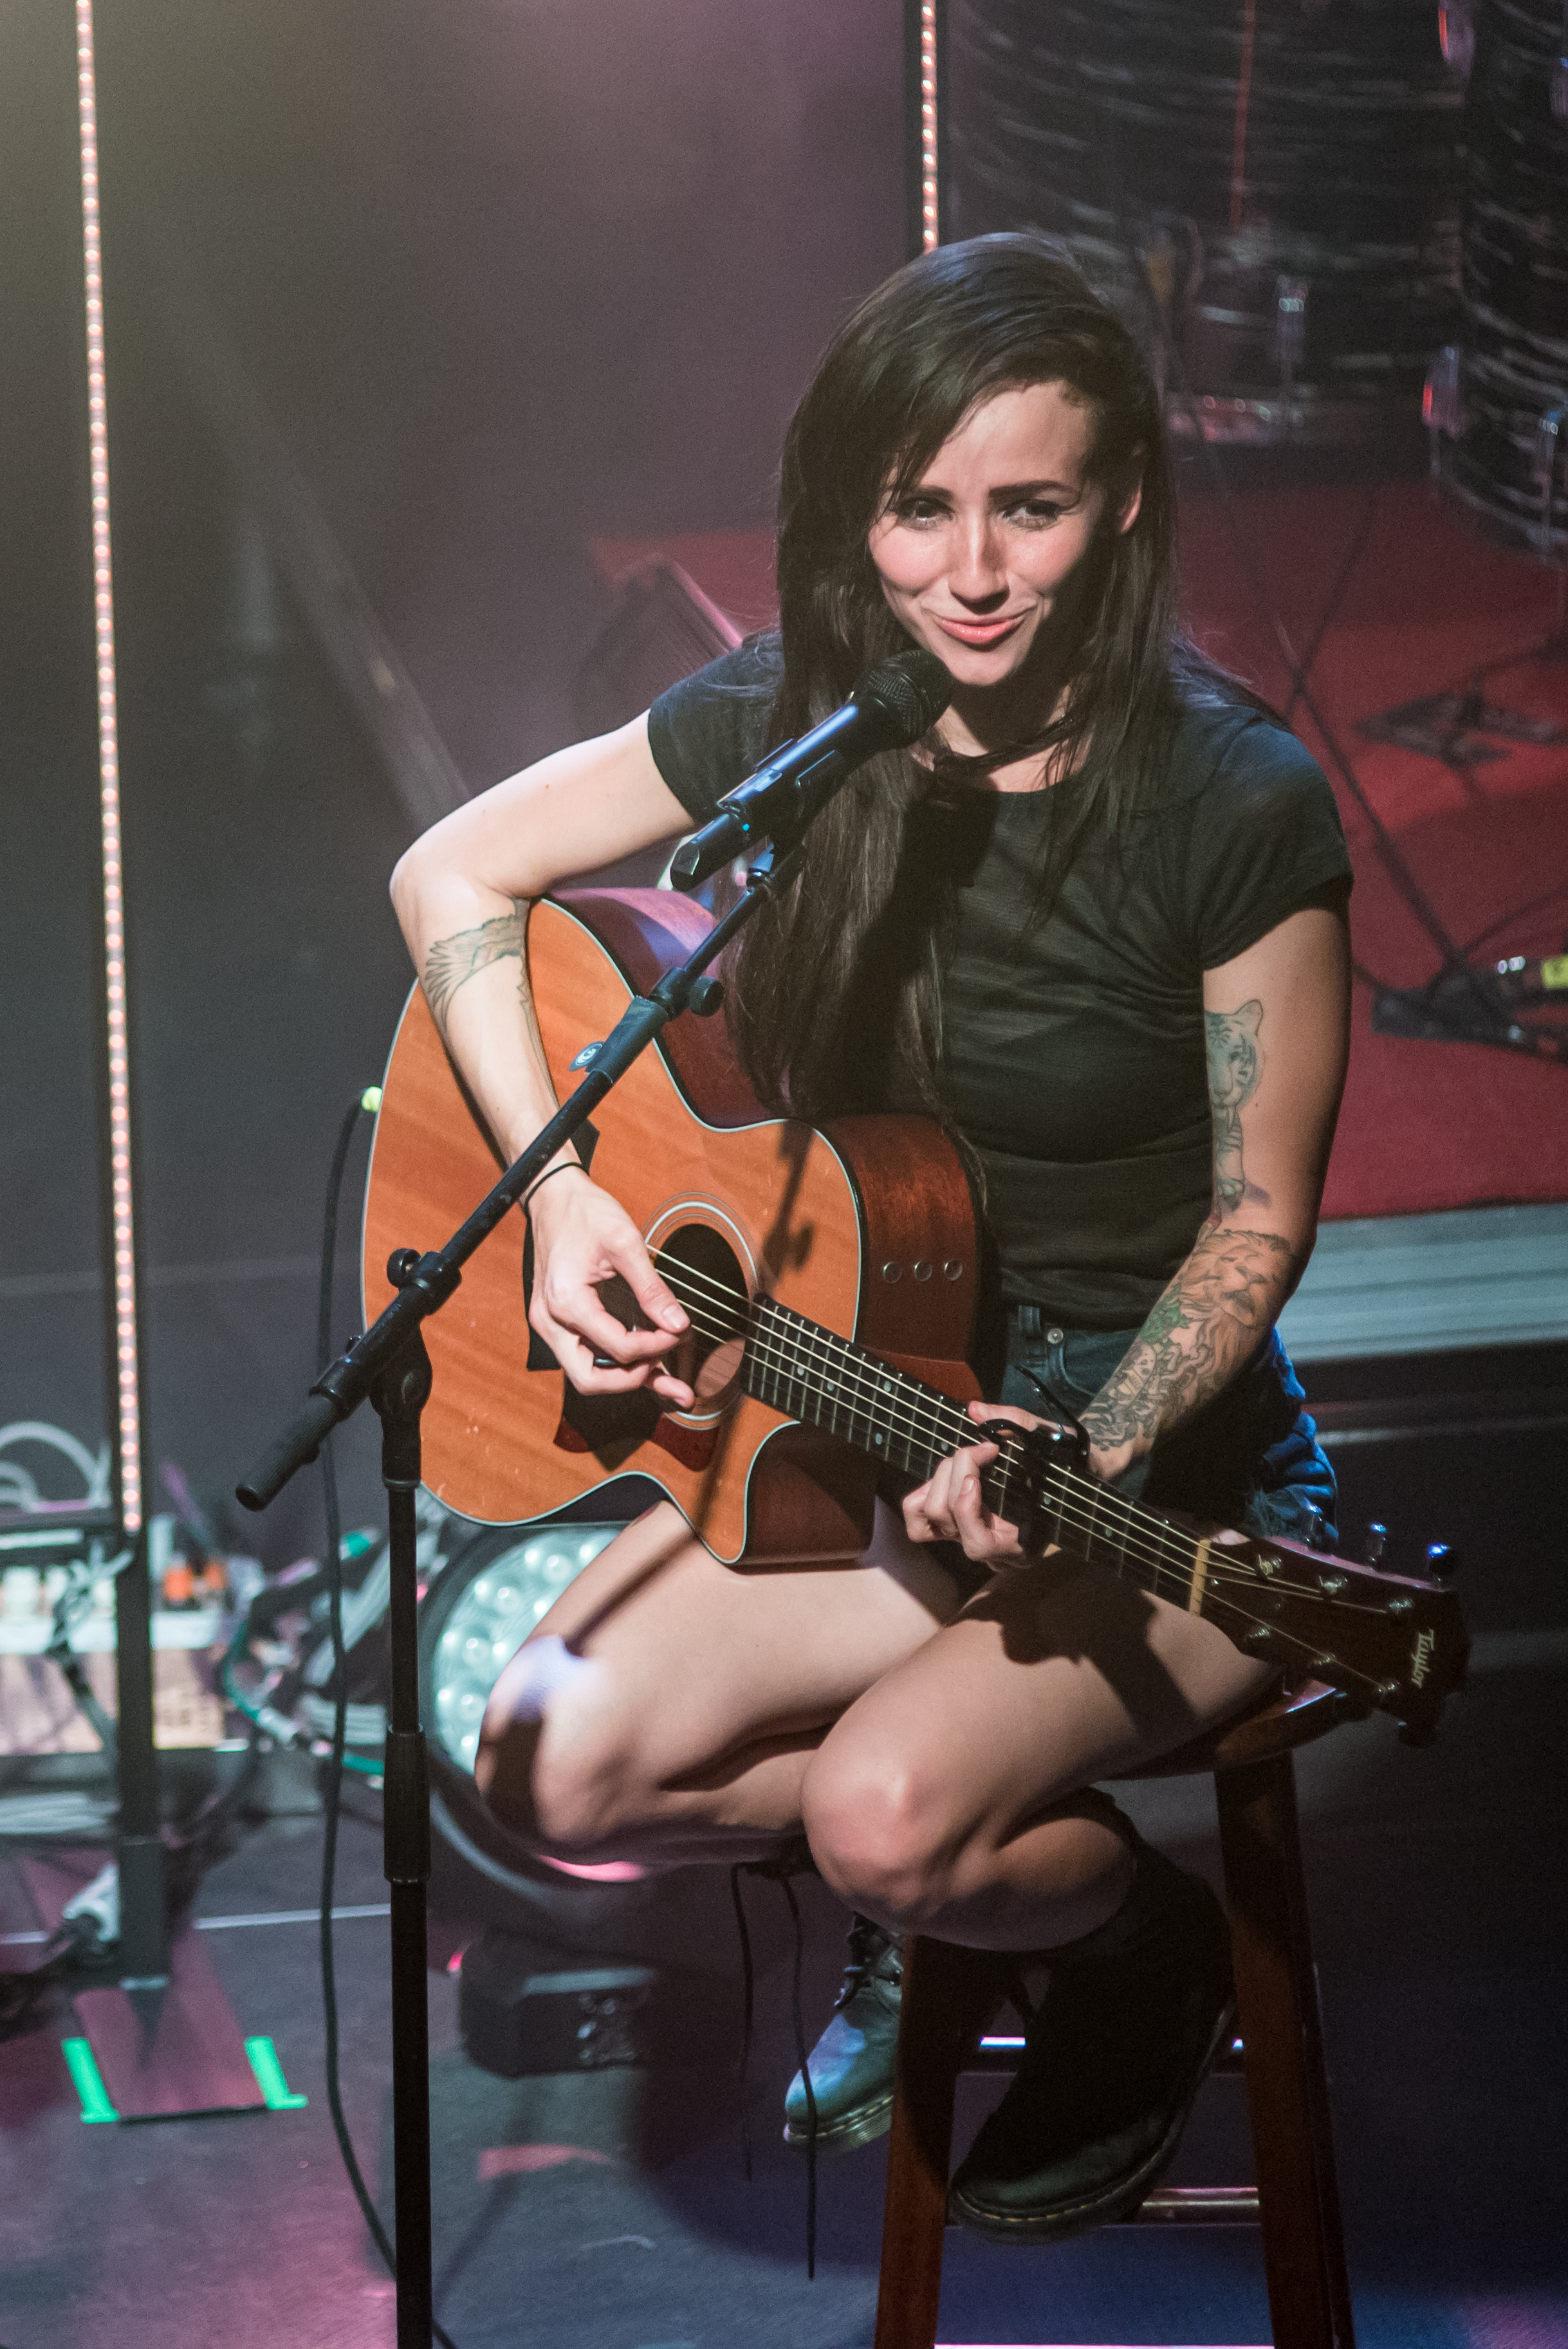 A smile of appreciation as LIGHTS concludes her first acoustic song and the crowd goes wild.